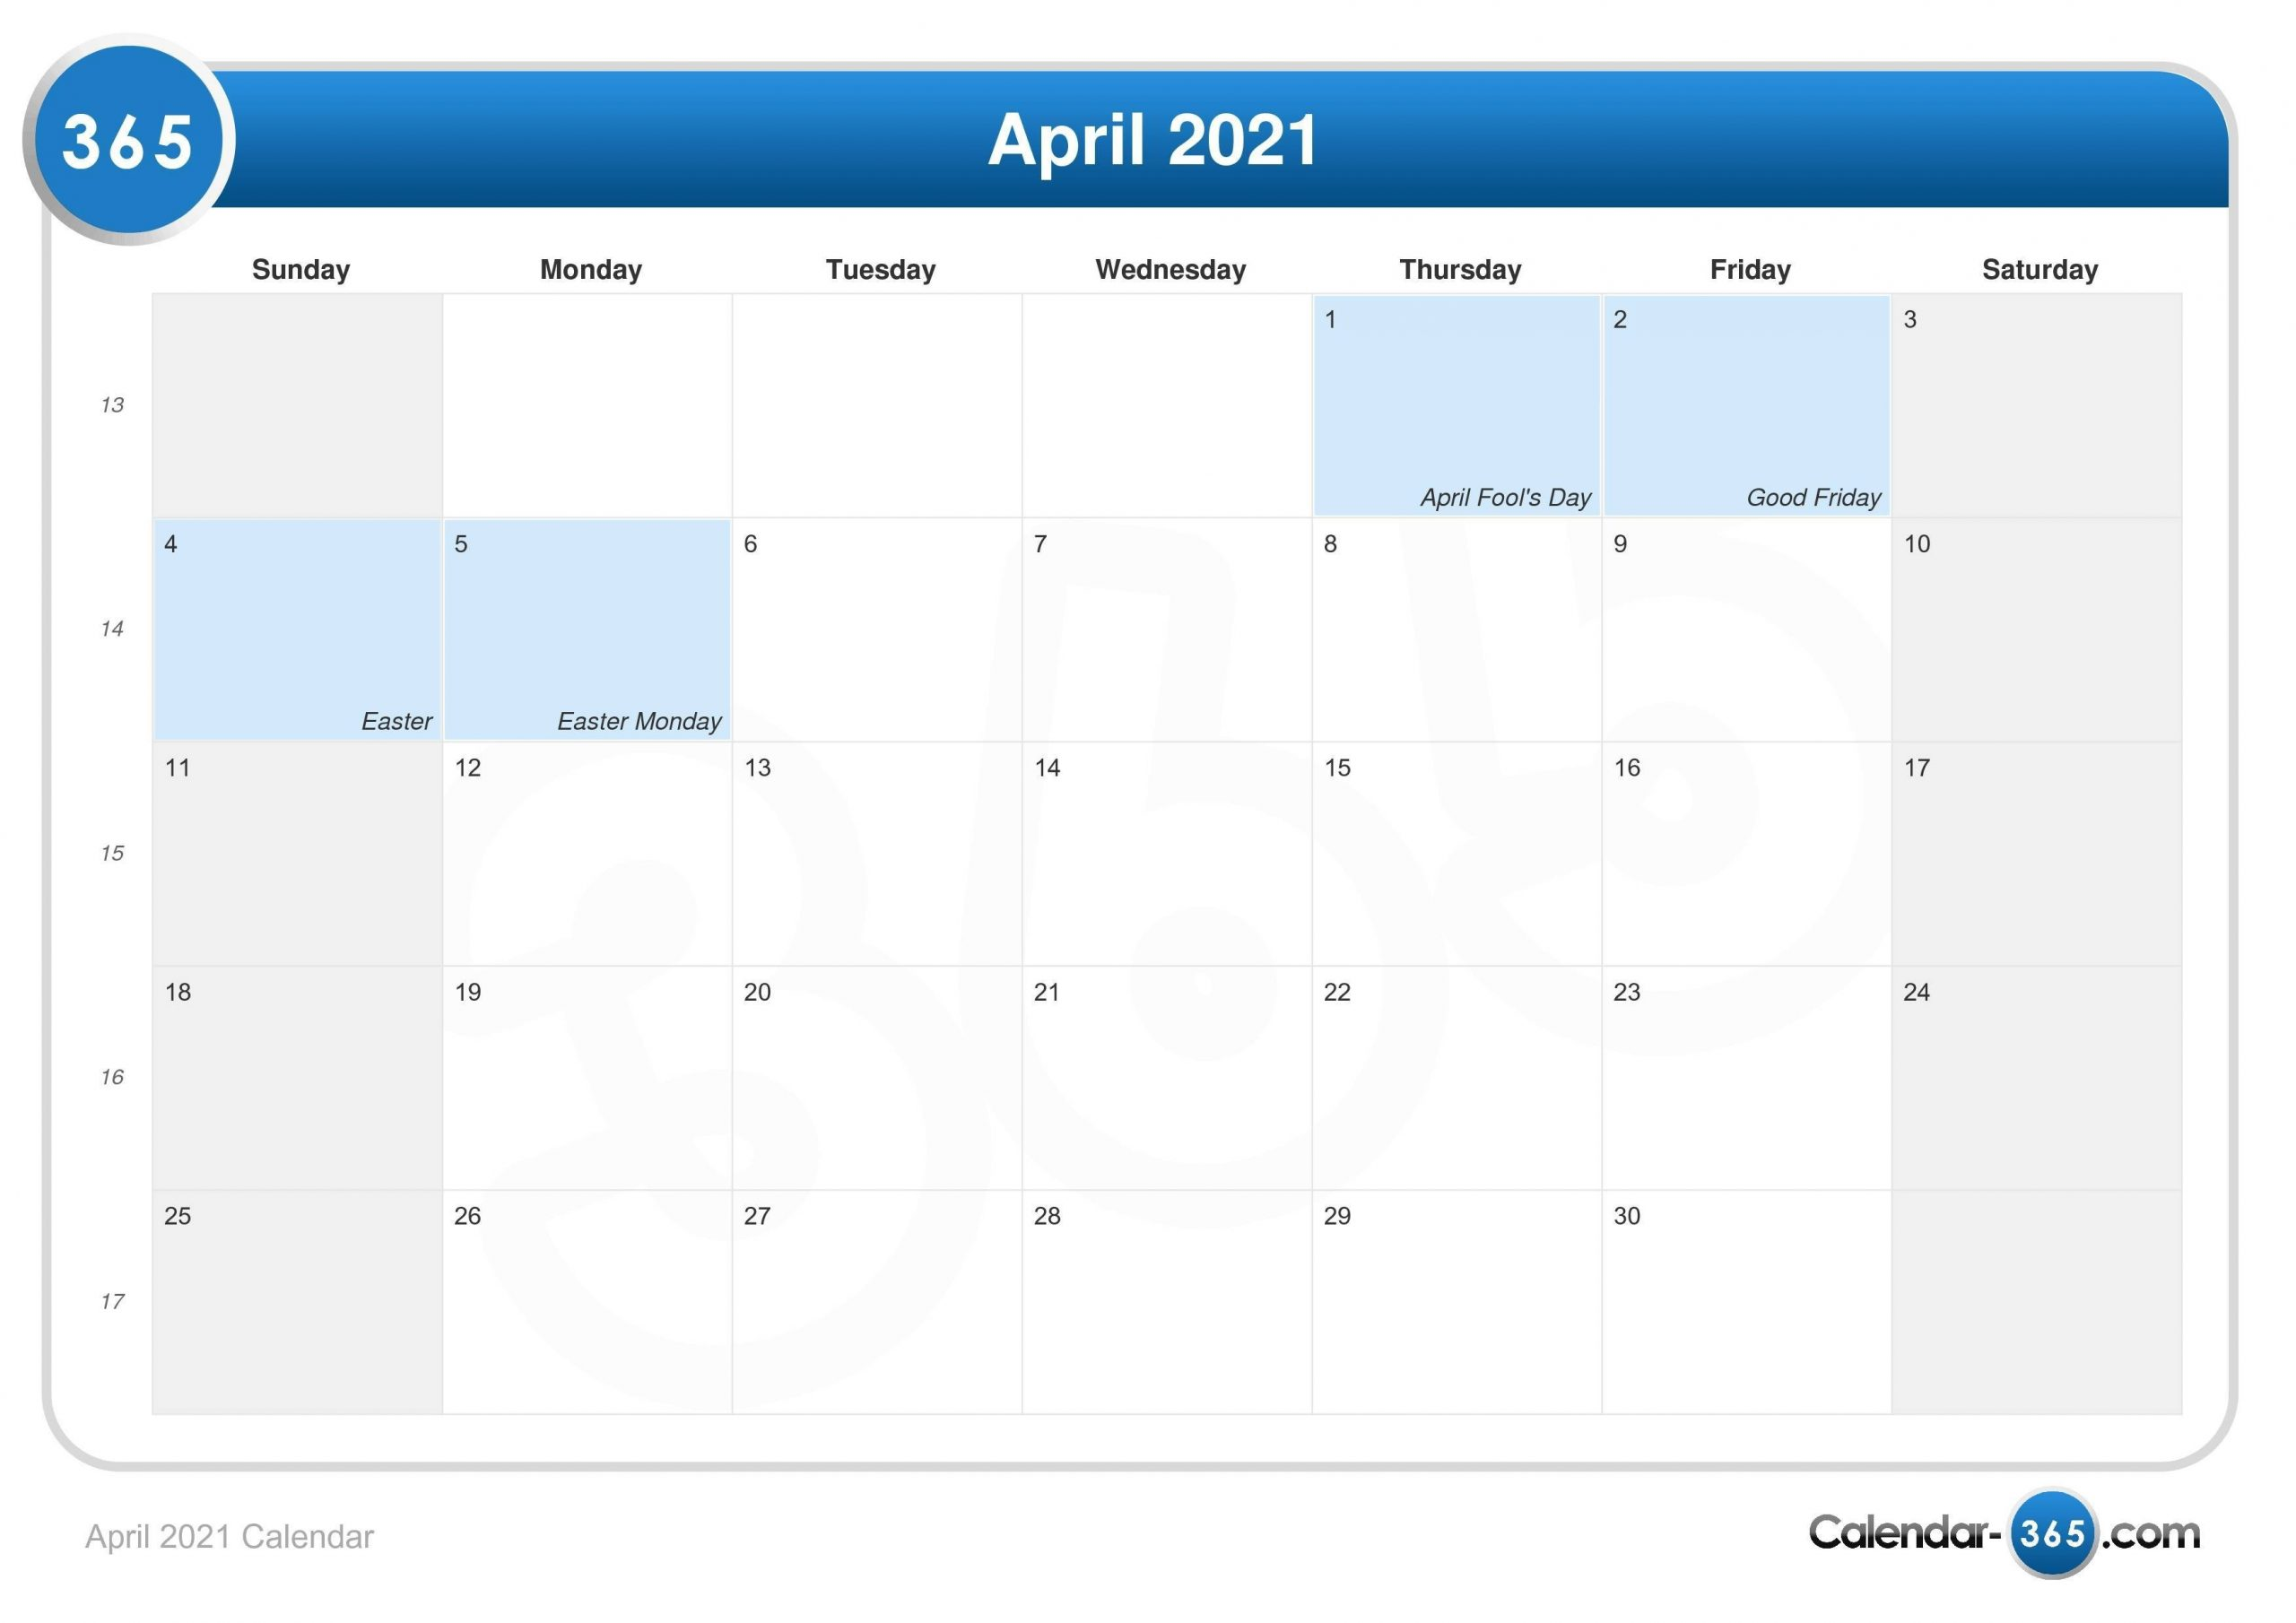 April 2021 Calendar  How Many Weeks In The 2021/19 Financial Year